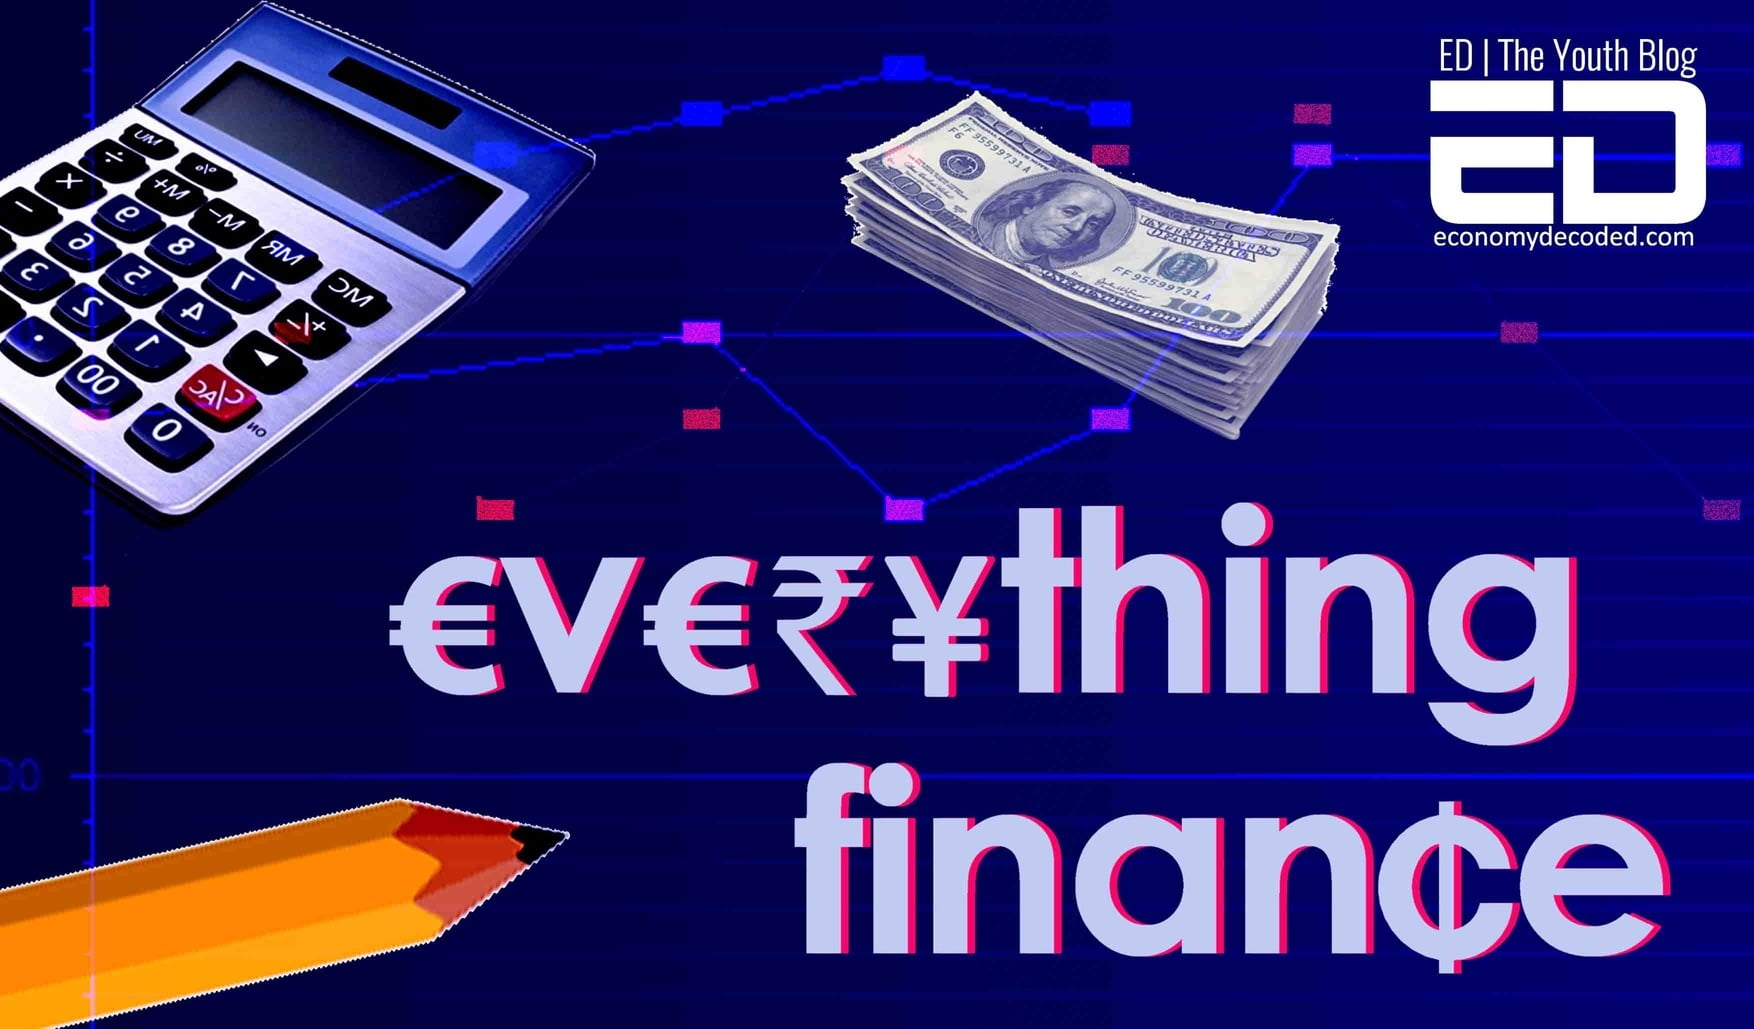 Everything Finance - Easy Finance for Millennials